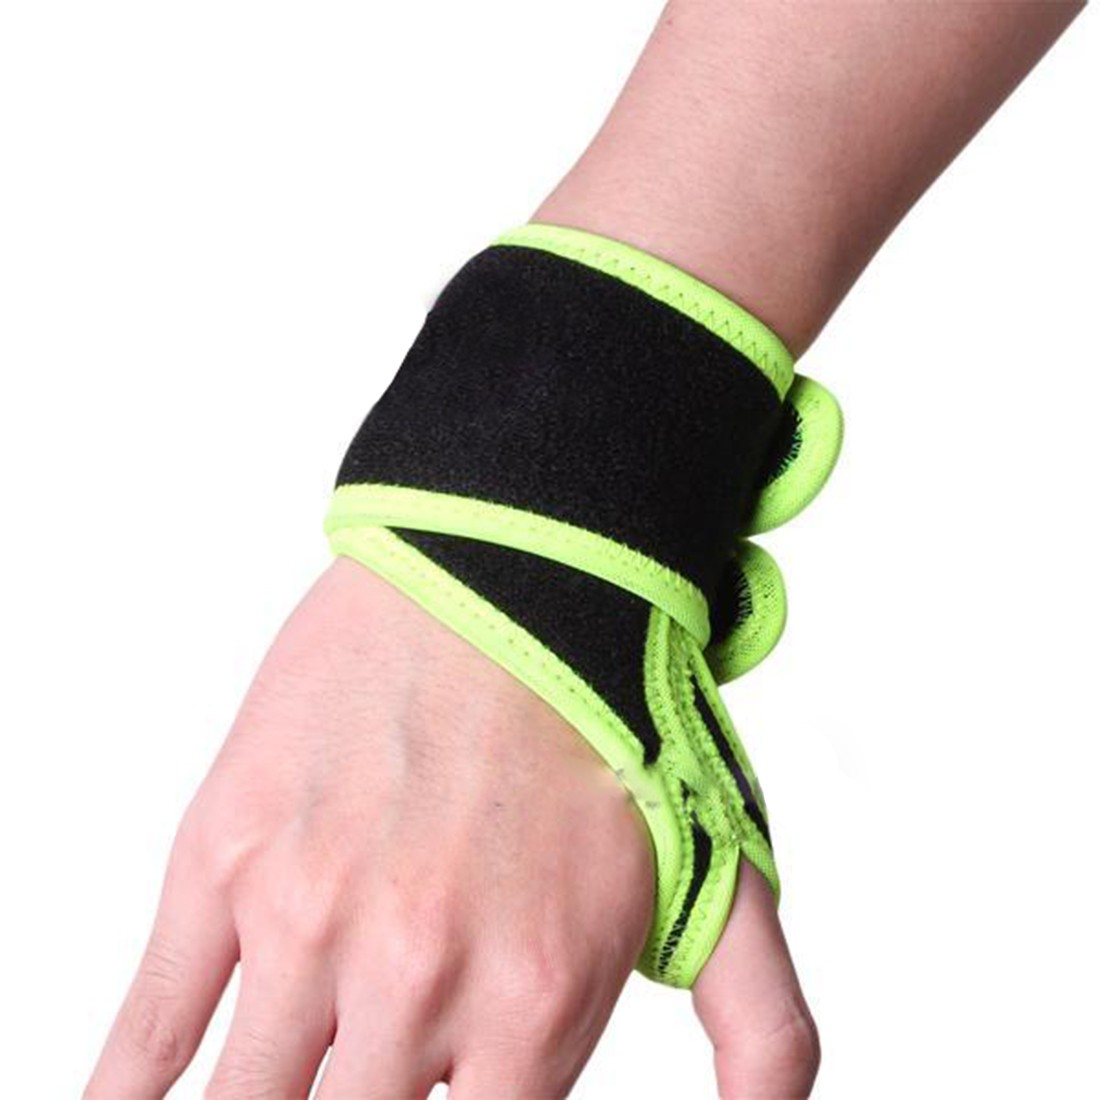 Reversible Sports Wrist Brace Wrist Support Wrap for Badminton Tennis Weightlifting